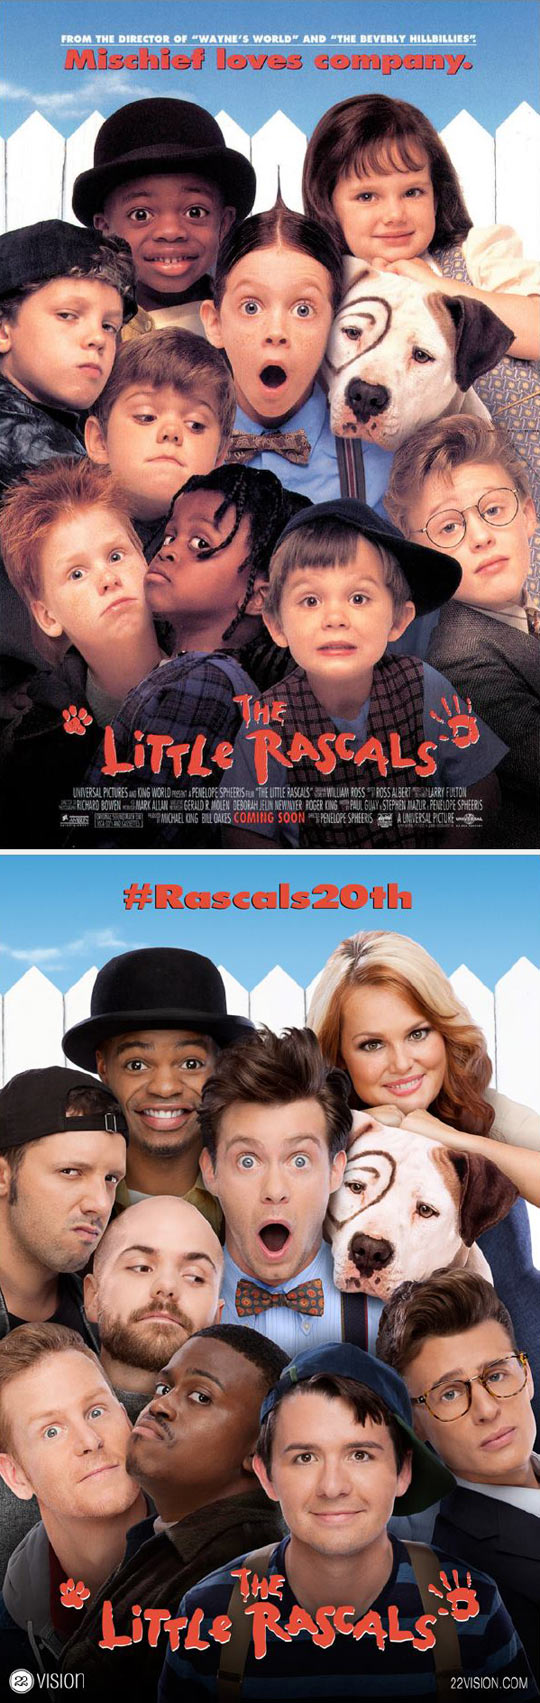 funny-Little-Rascals-movie-twenty-years-later